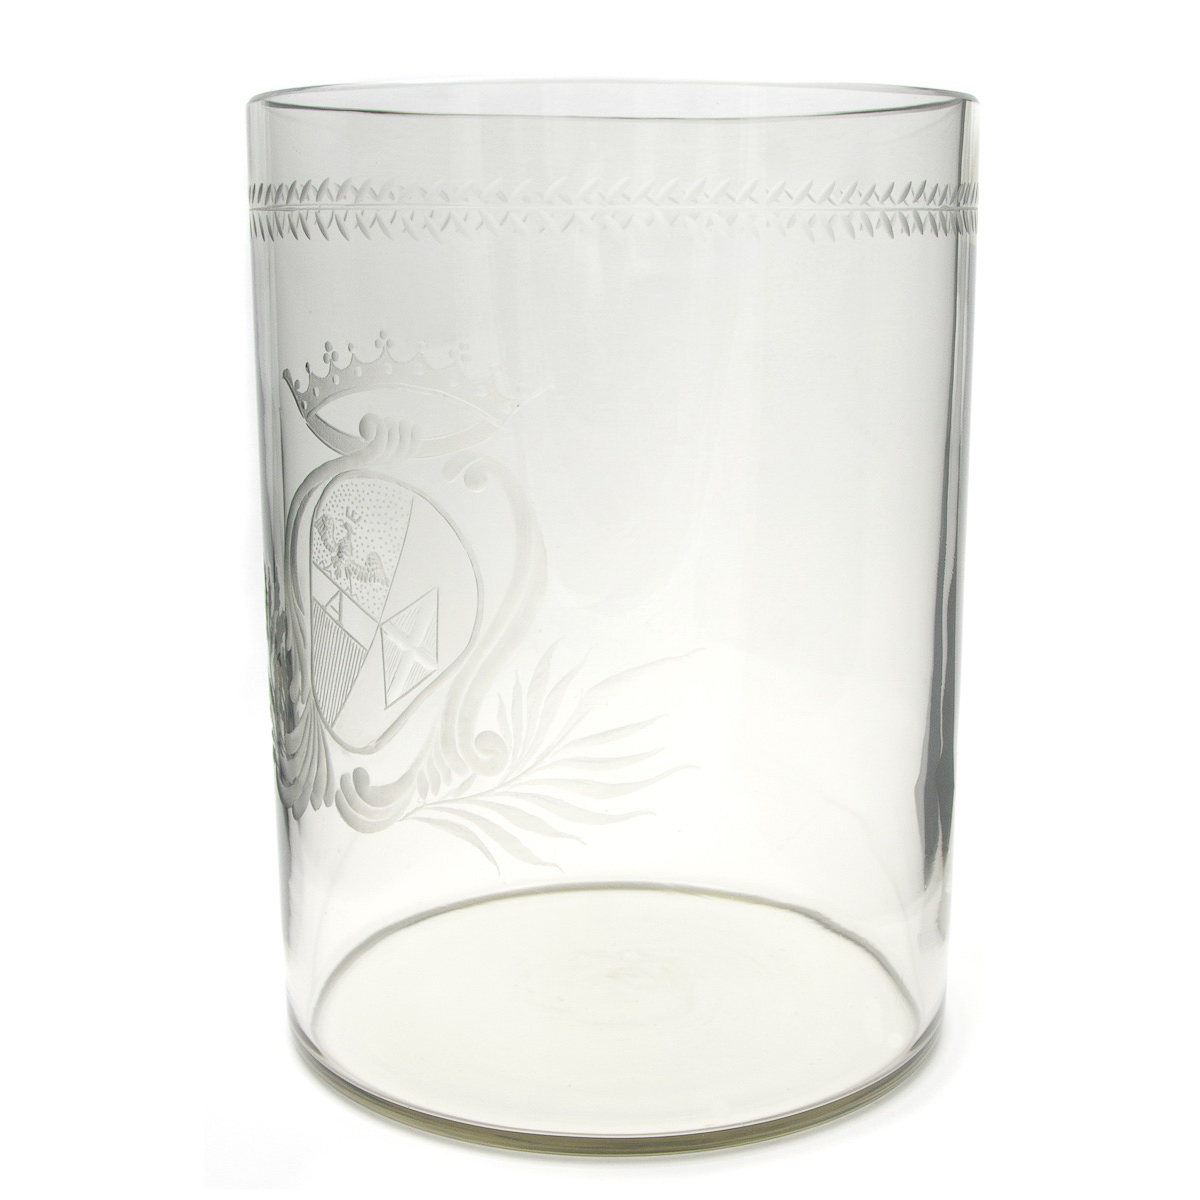 clemy-vase-engraved-candle-holder